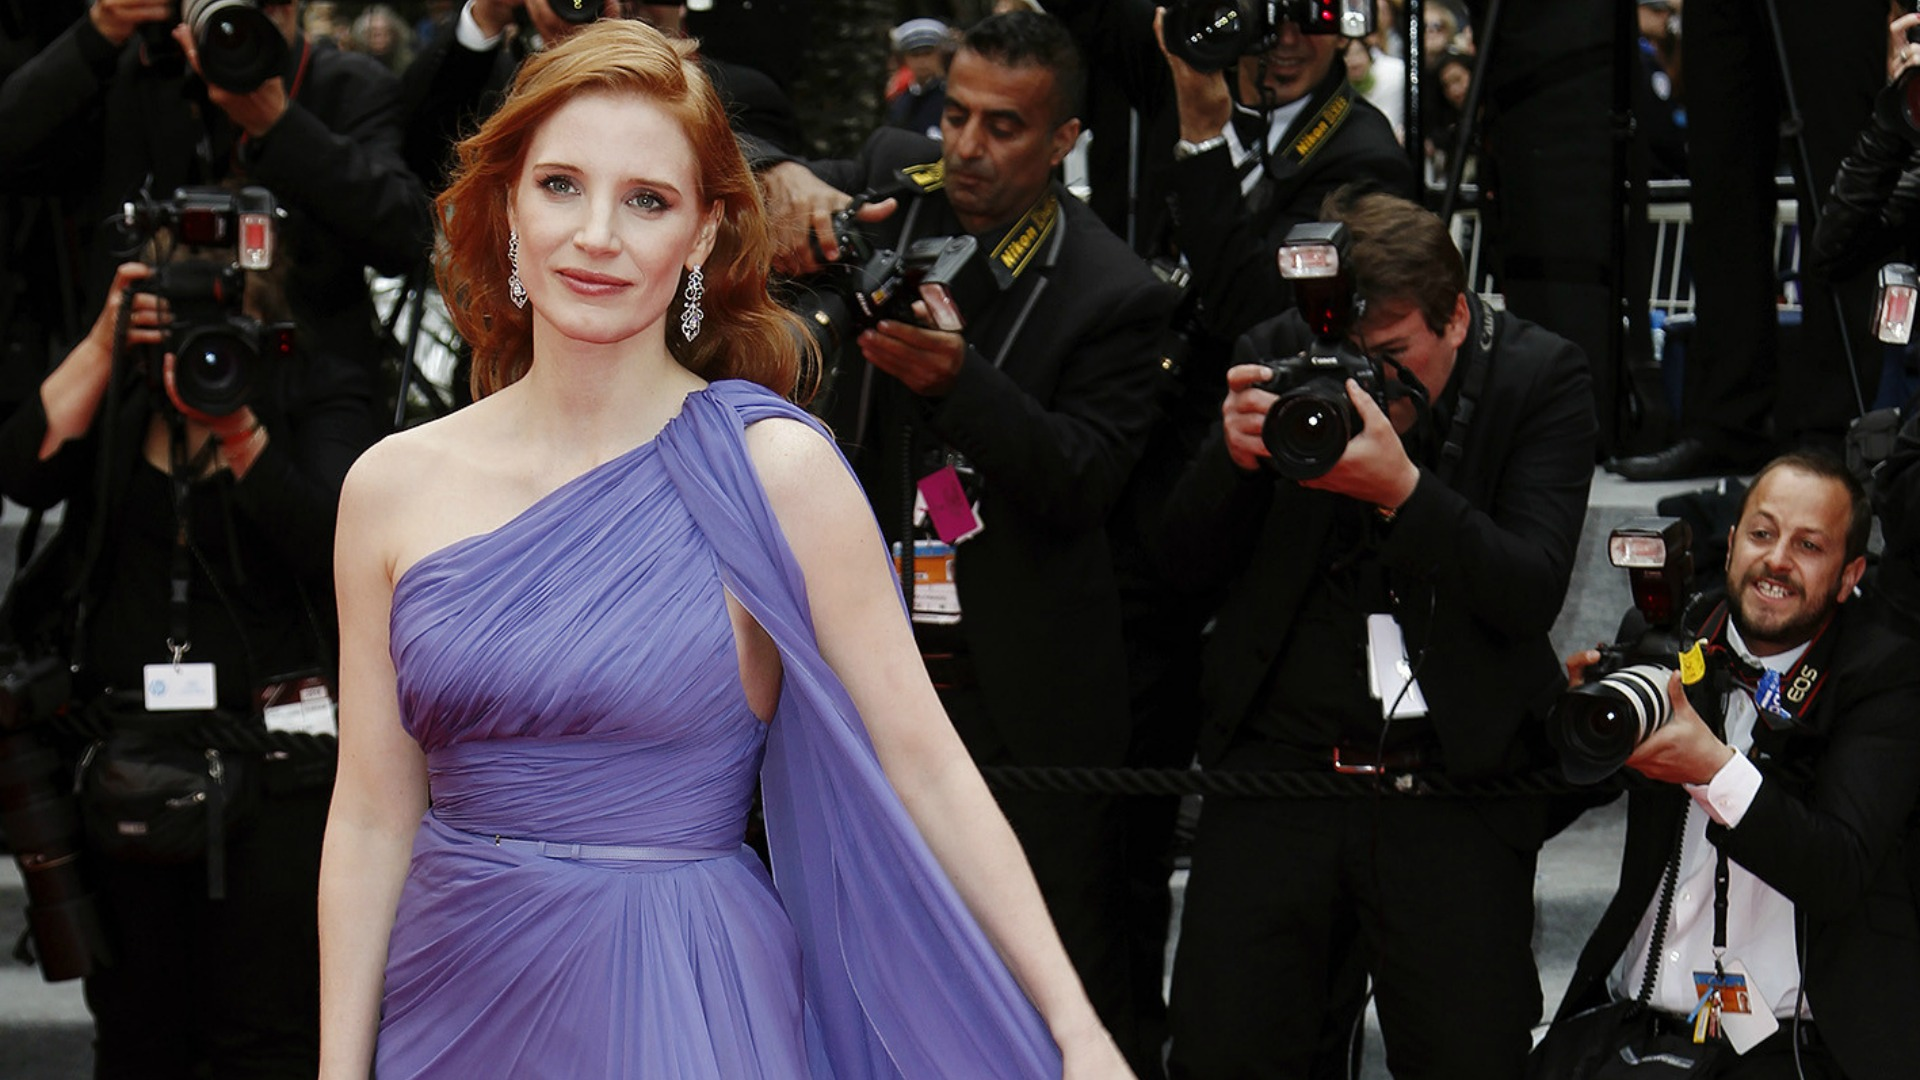 Jessica Chastain True Detective rumors